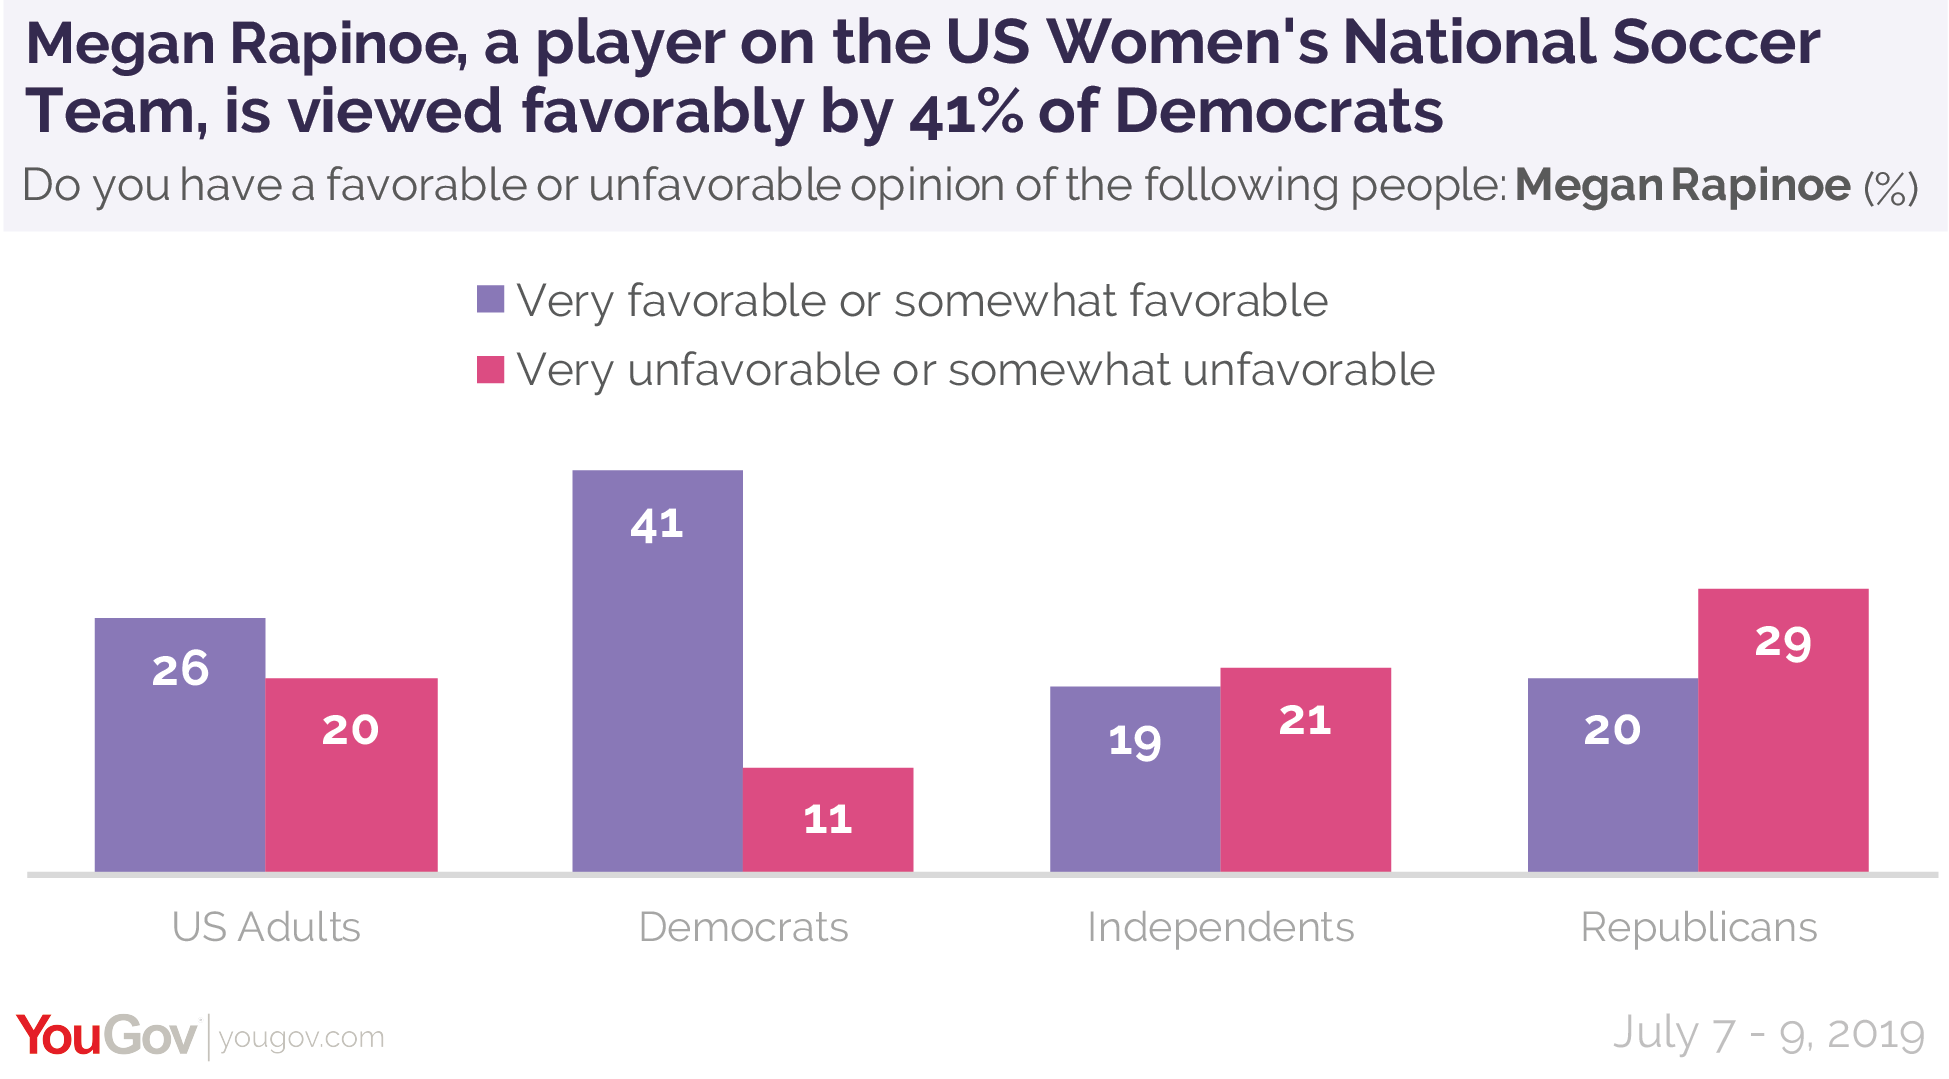 Megan Rapinoe, a player on the US Women's National Soccer Team, is viewed favorably by 41% of Democrats